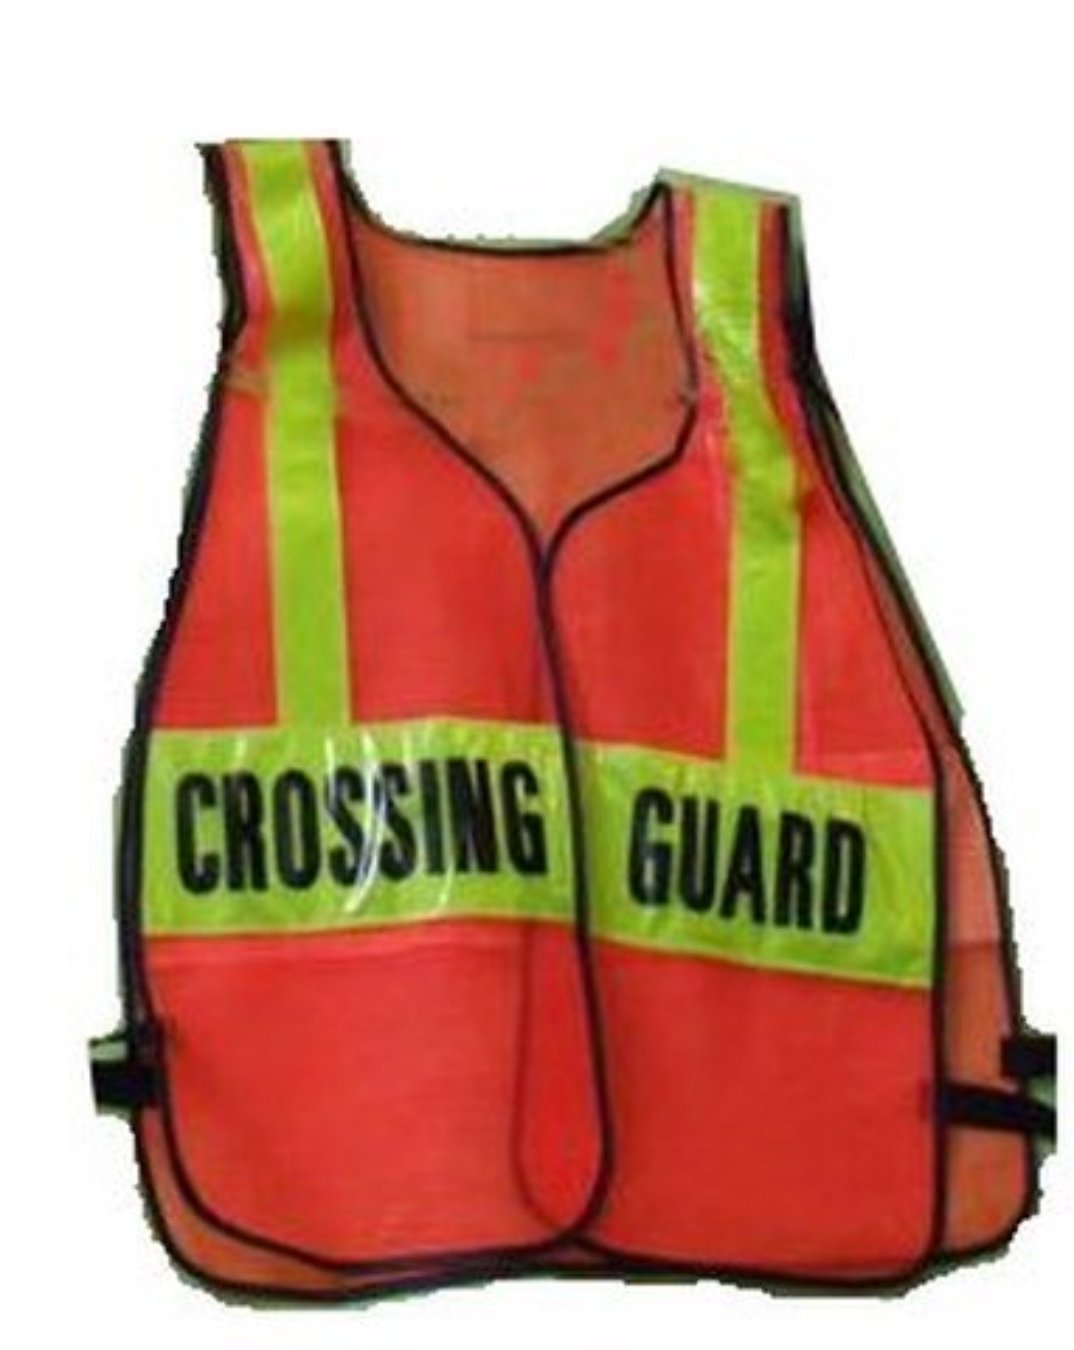 SCHOOL CROSSING GUARD Orange REFLECTIVE Traffic Safety Vest One Size Fits All